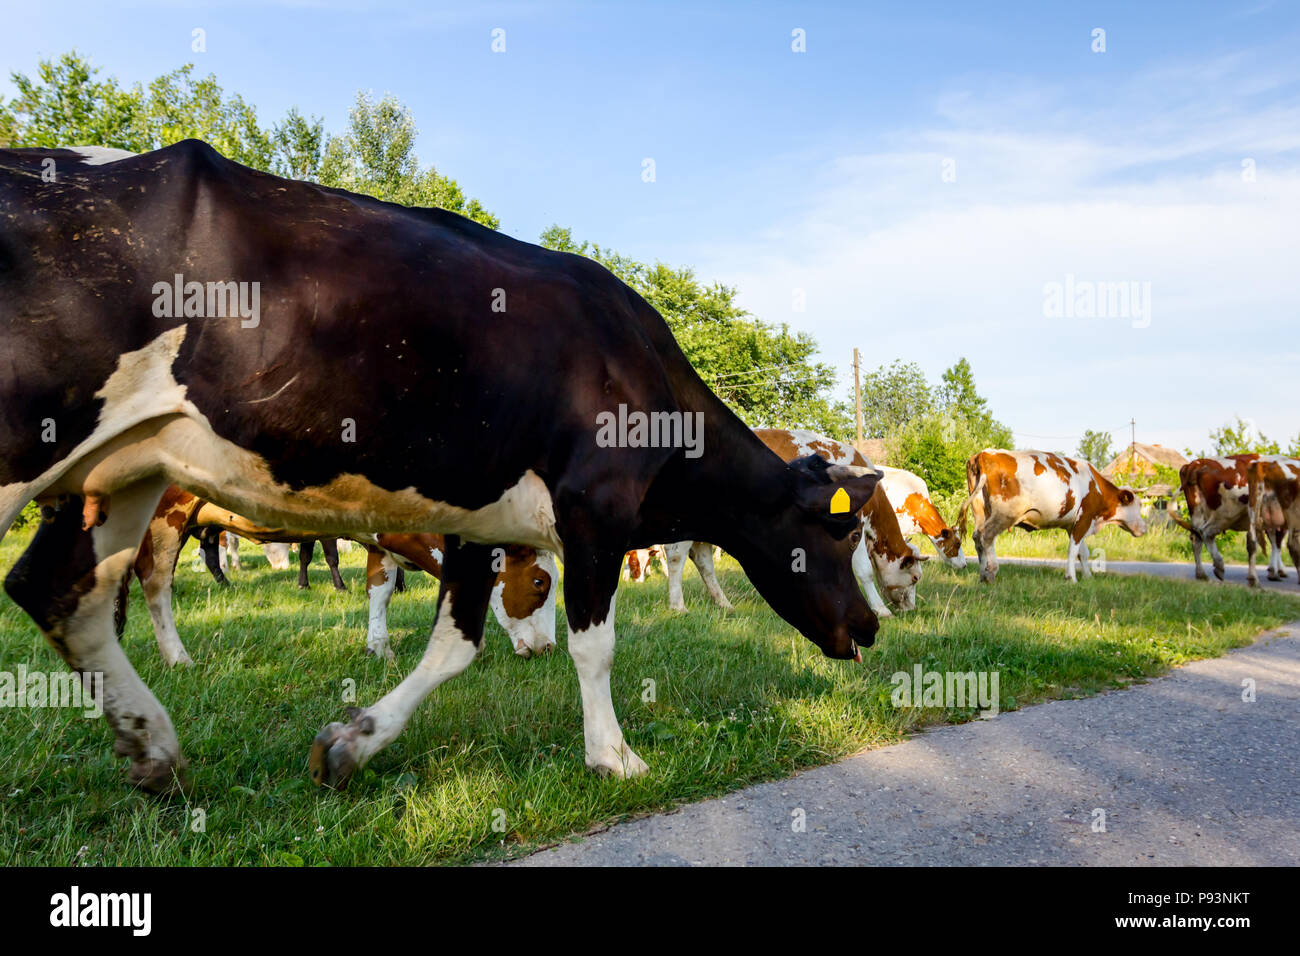 Two shepherds are driving a herd of bloodstock domestic cows home to the barn after pasture on asphalt road in village. - Stock Image